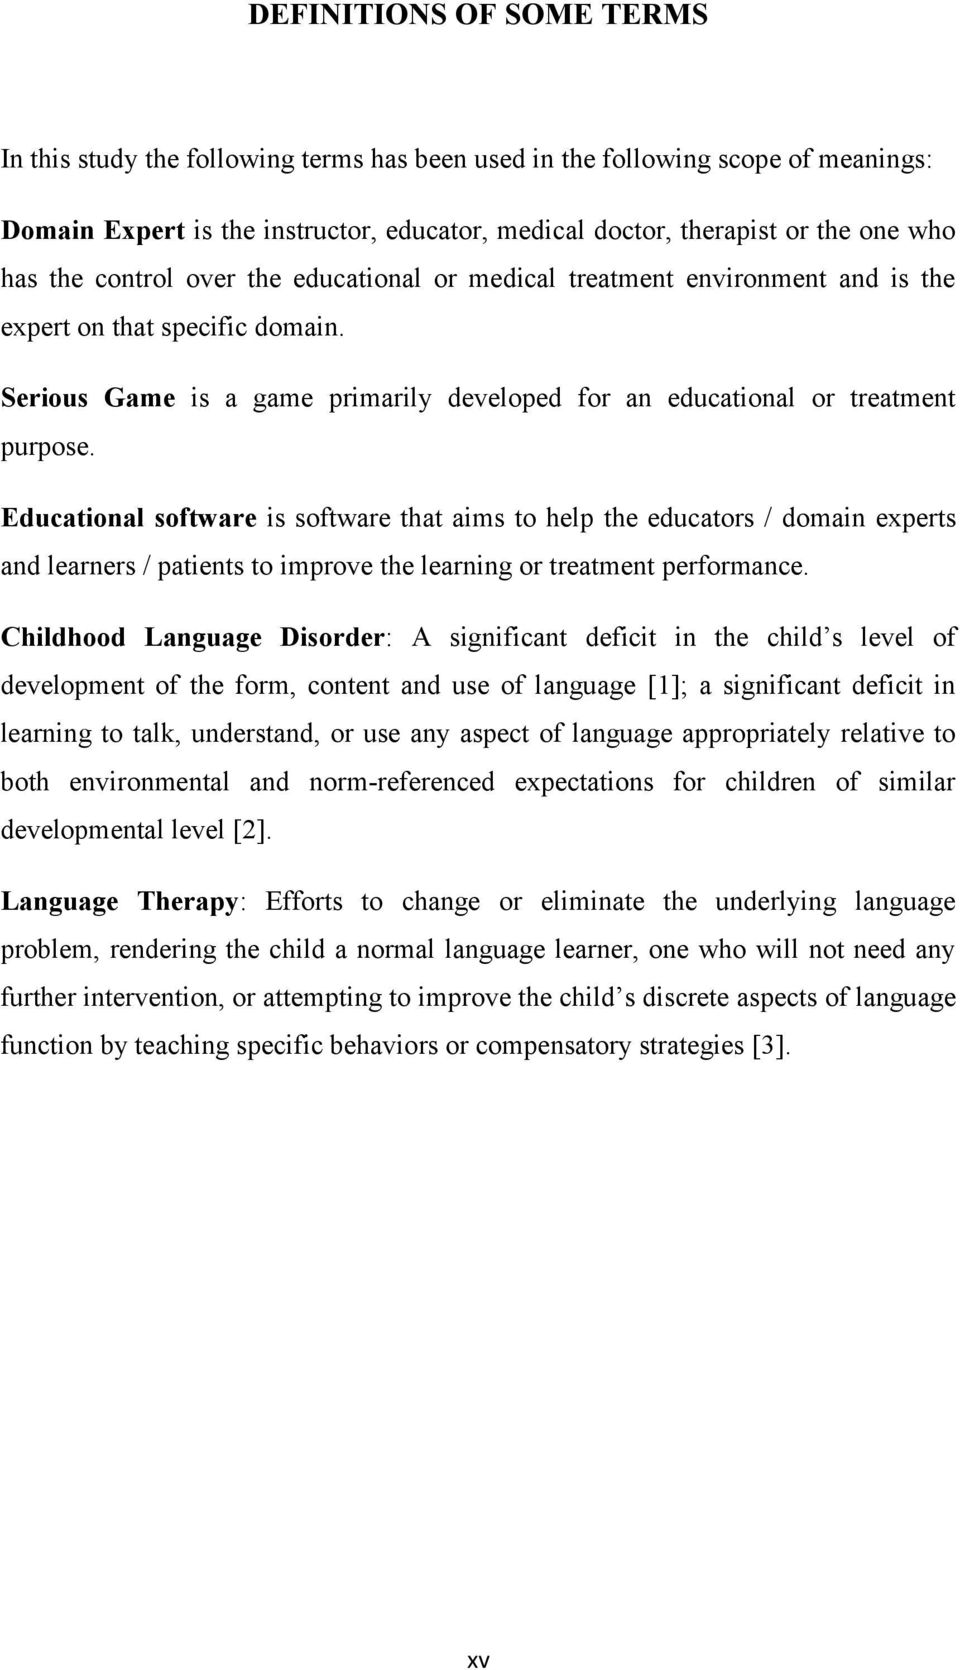 Educational software is software that aims to help the educators / domain experts and learners / patients to improve the learning or treatment performance.